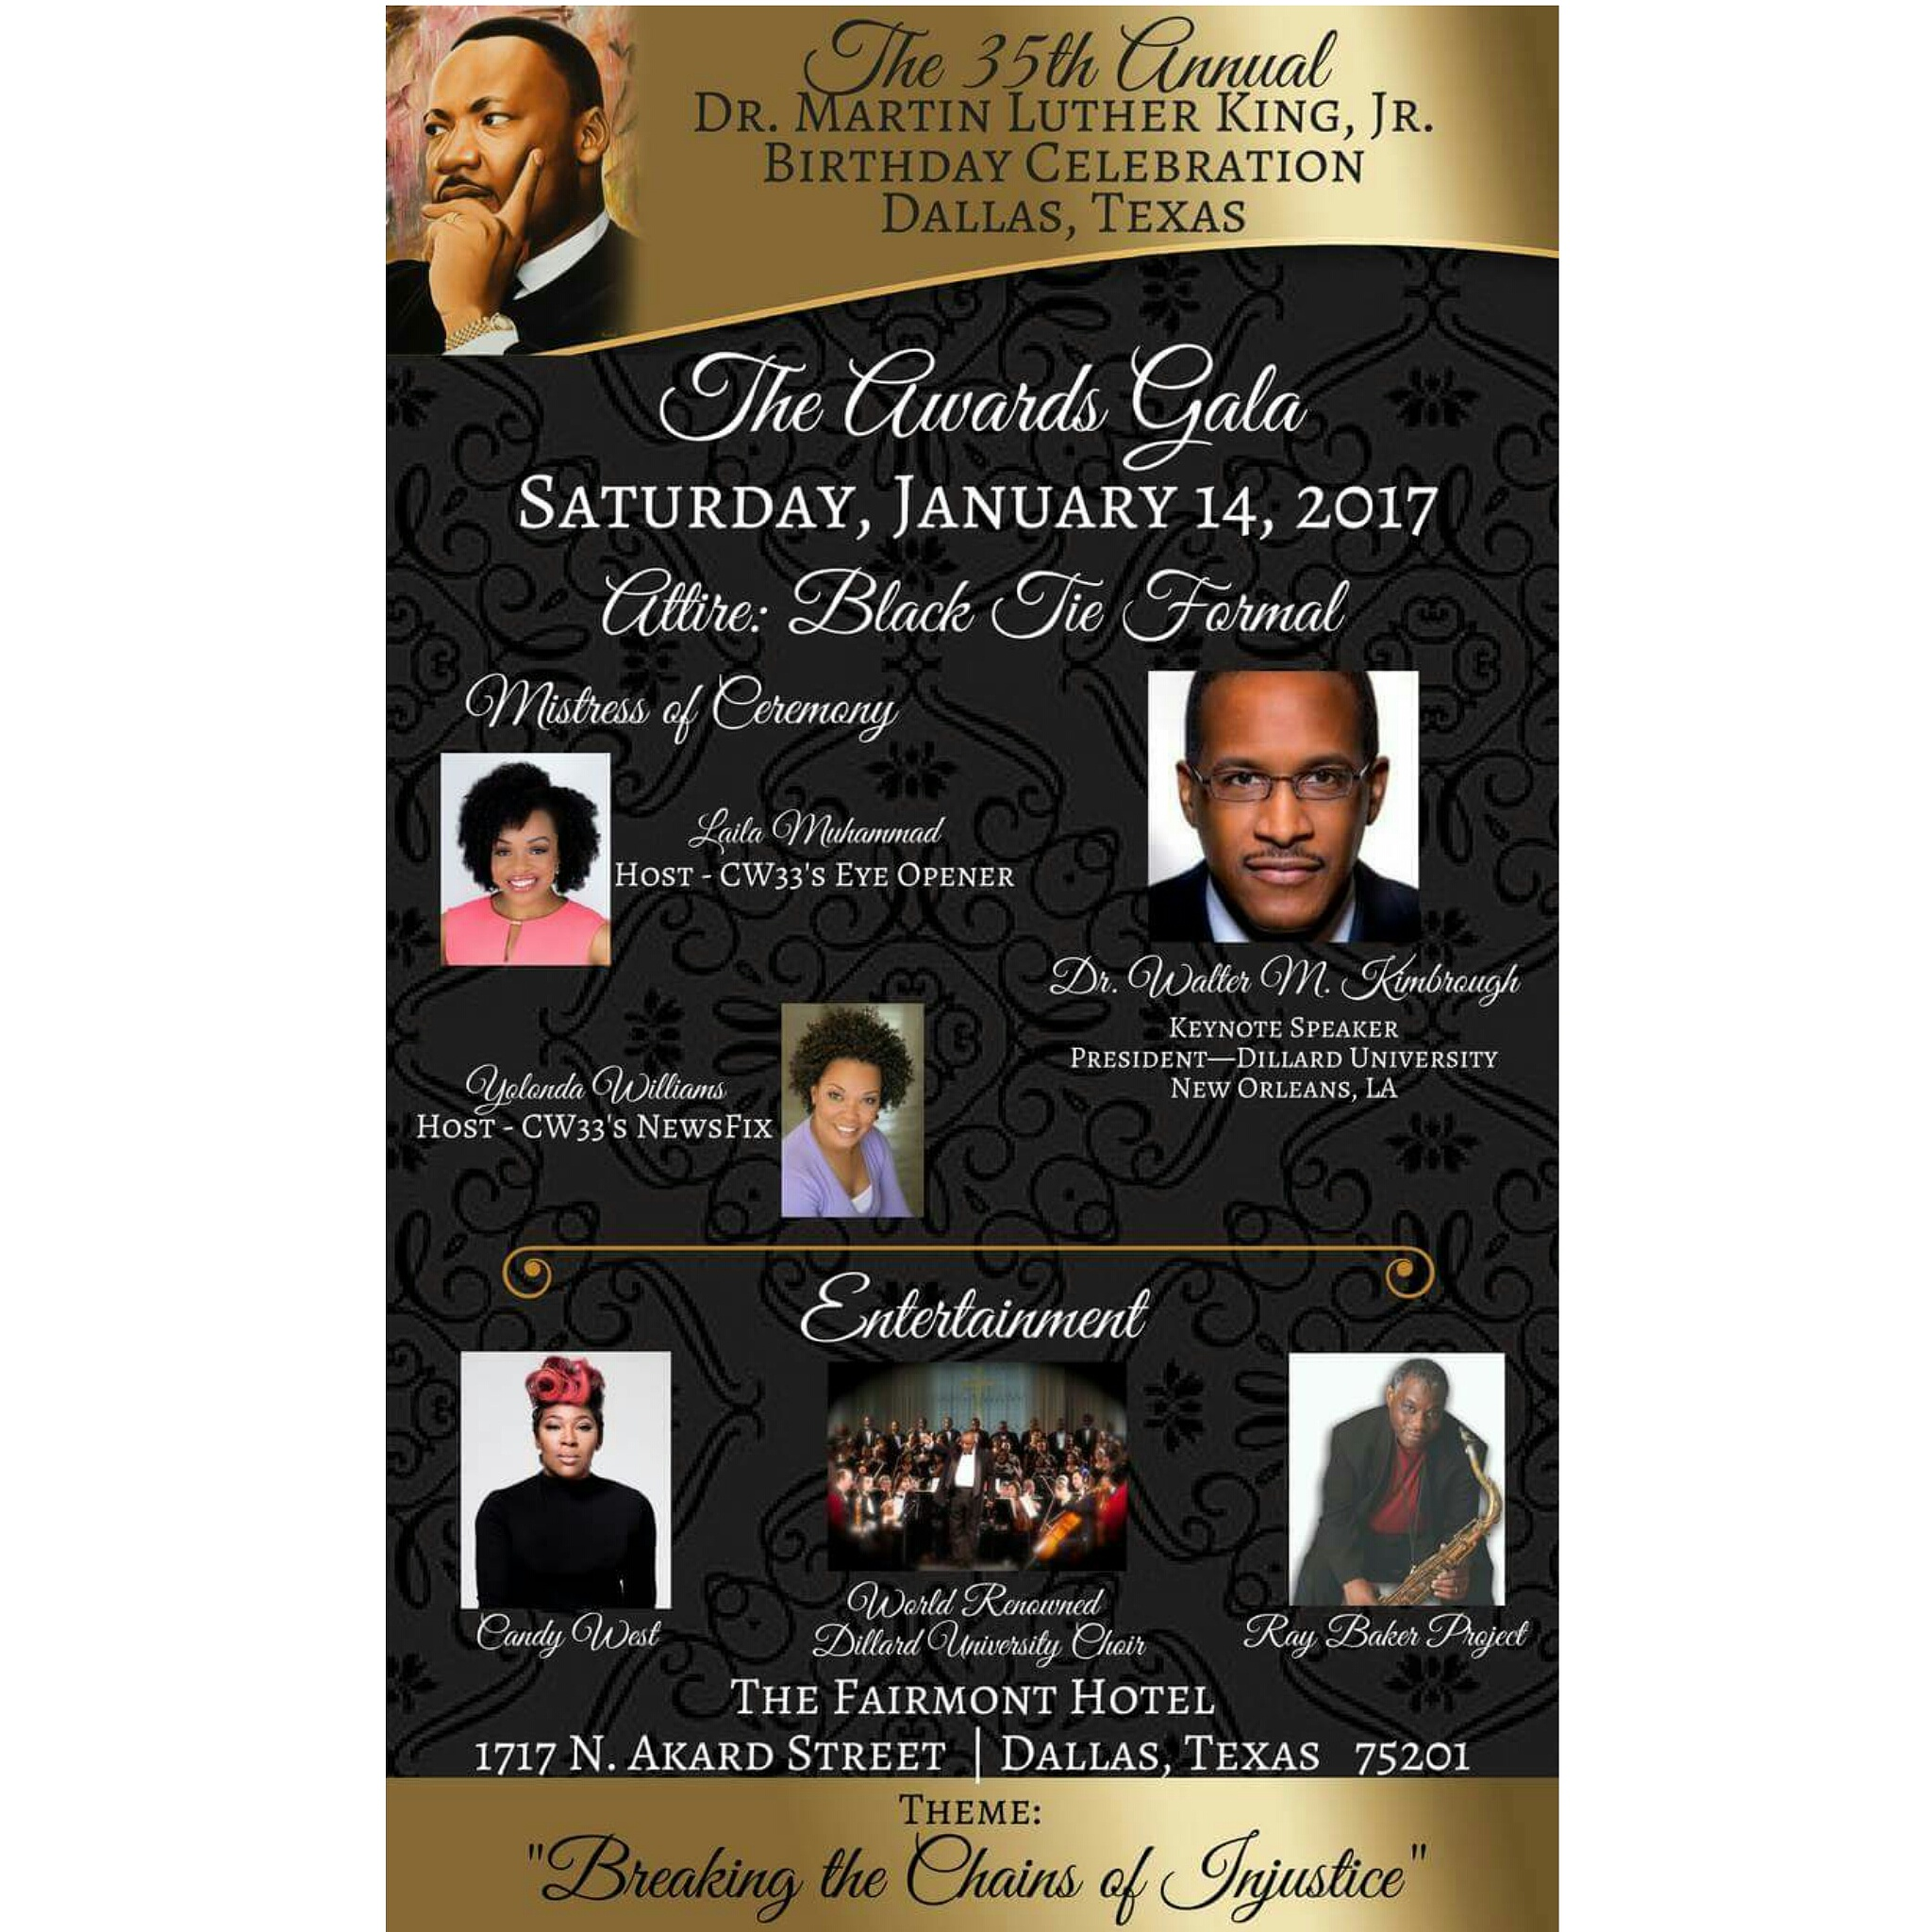 The 35th Annual Dr. Martin Luther King, Jr. Birthday Celebration